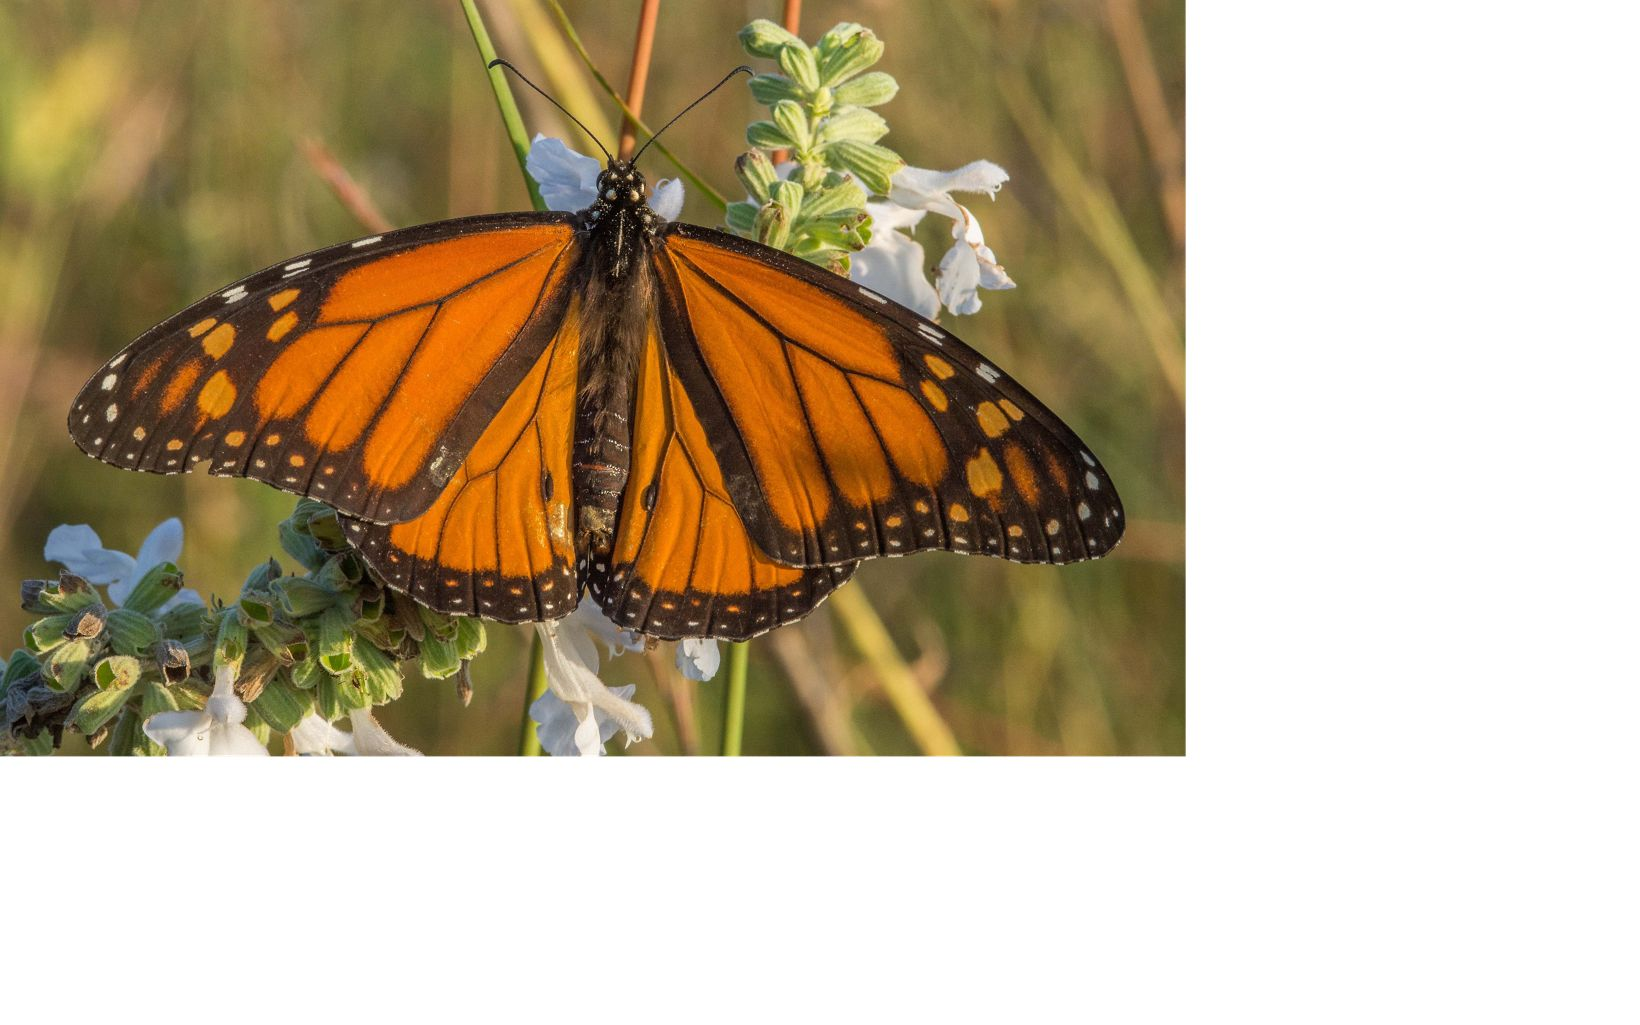 Orange and black butterfly feeding on light green plant with white flowers.